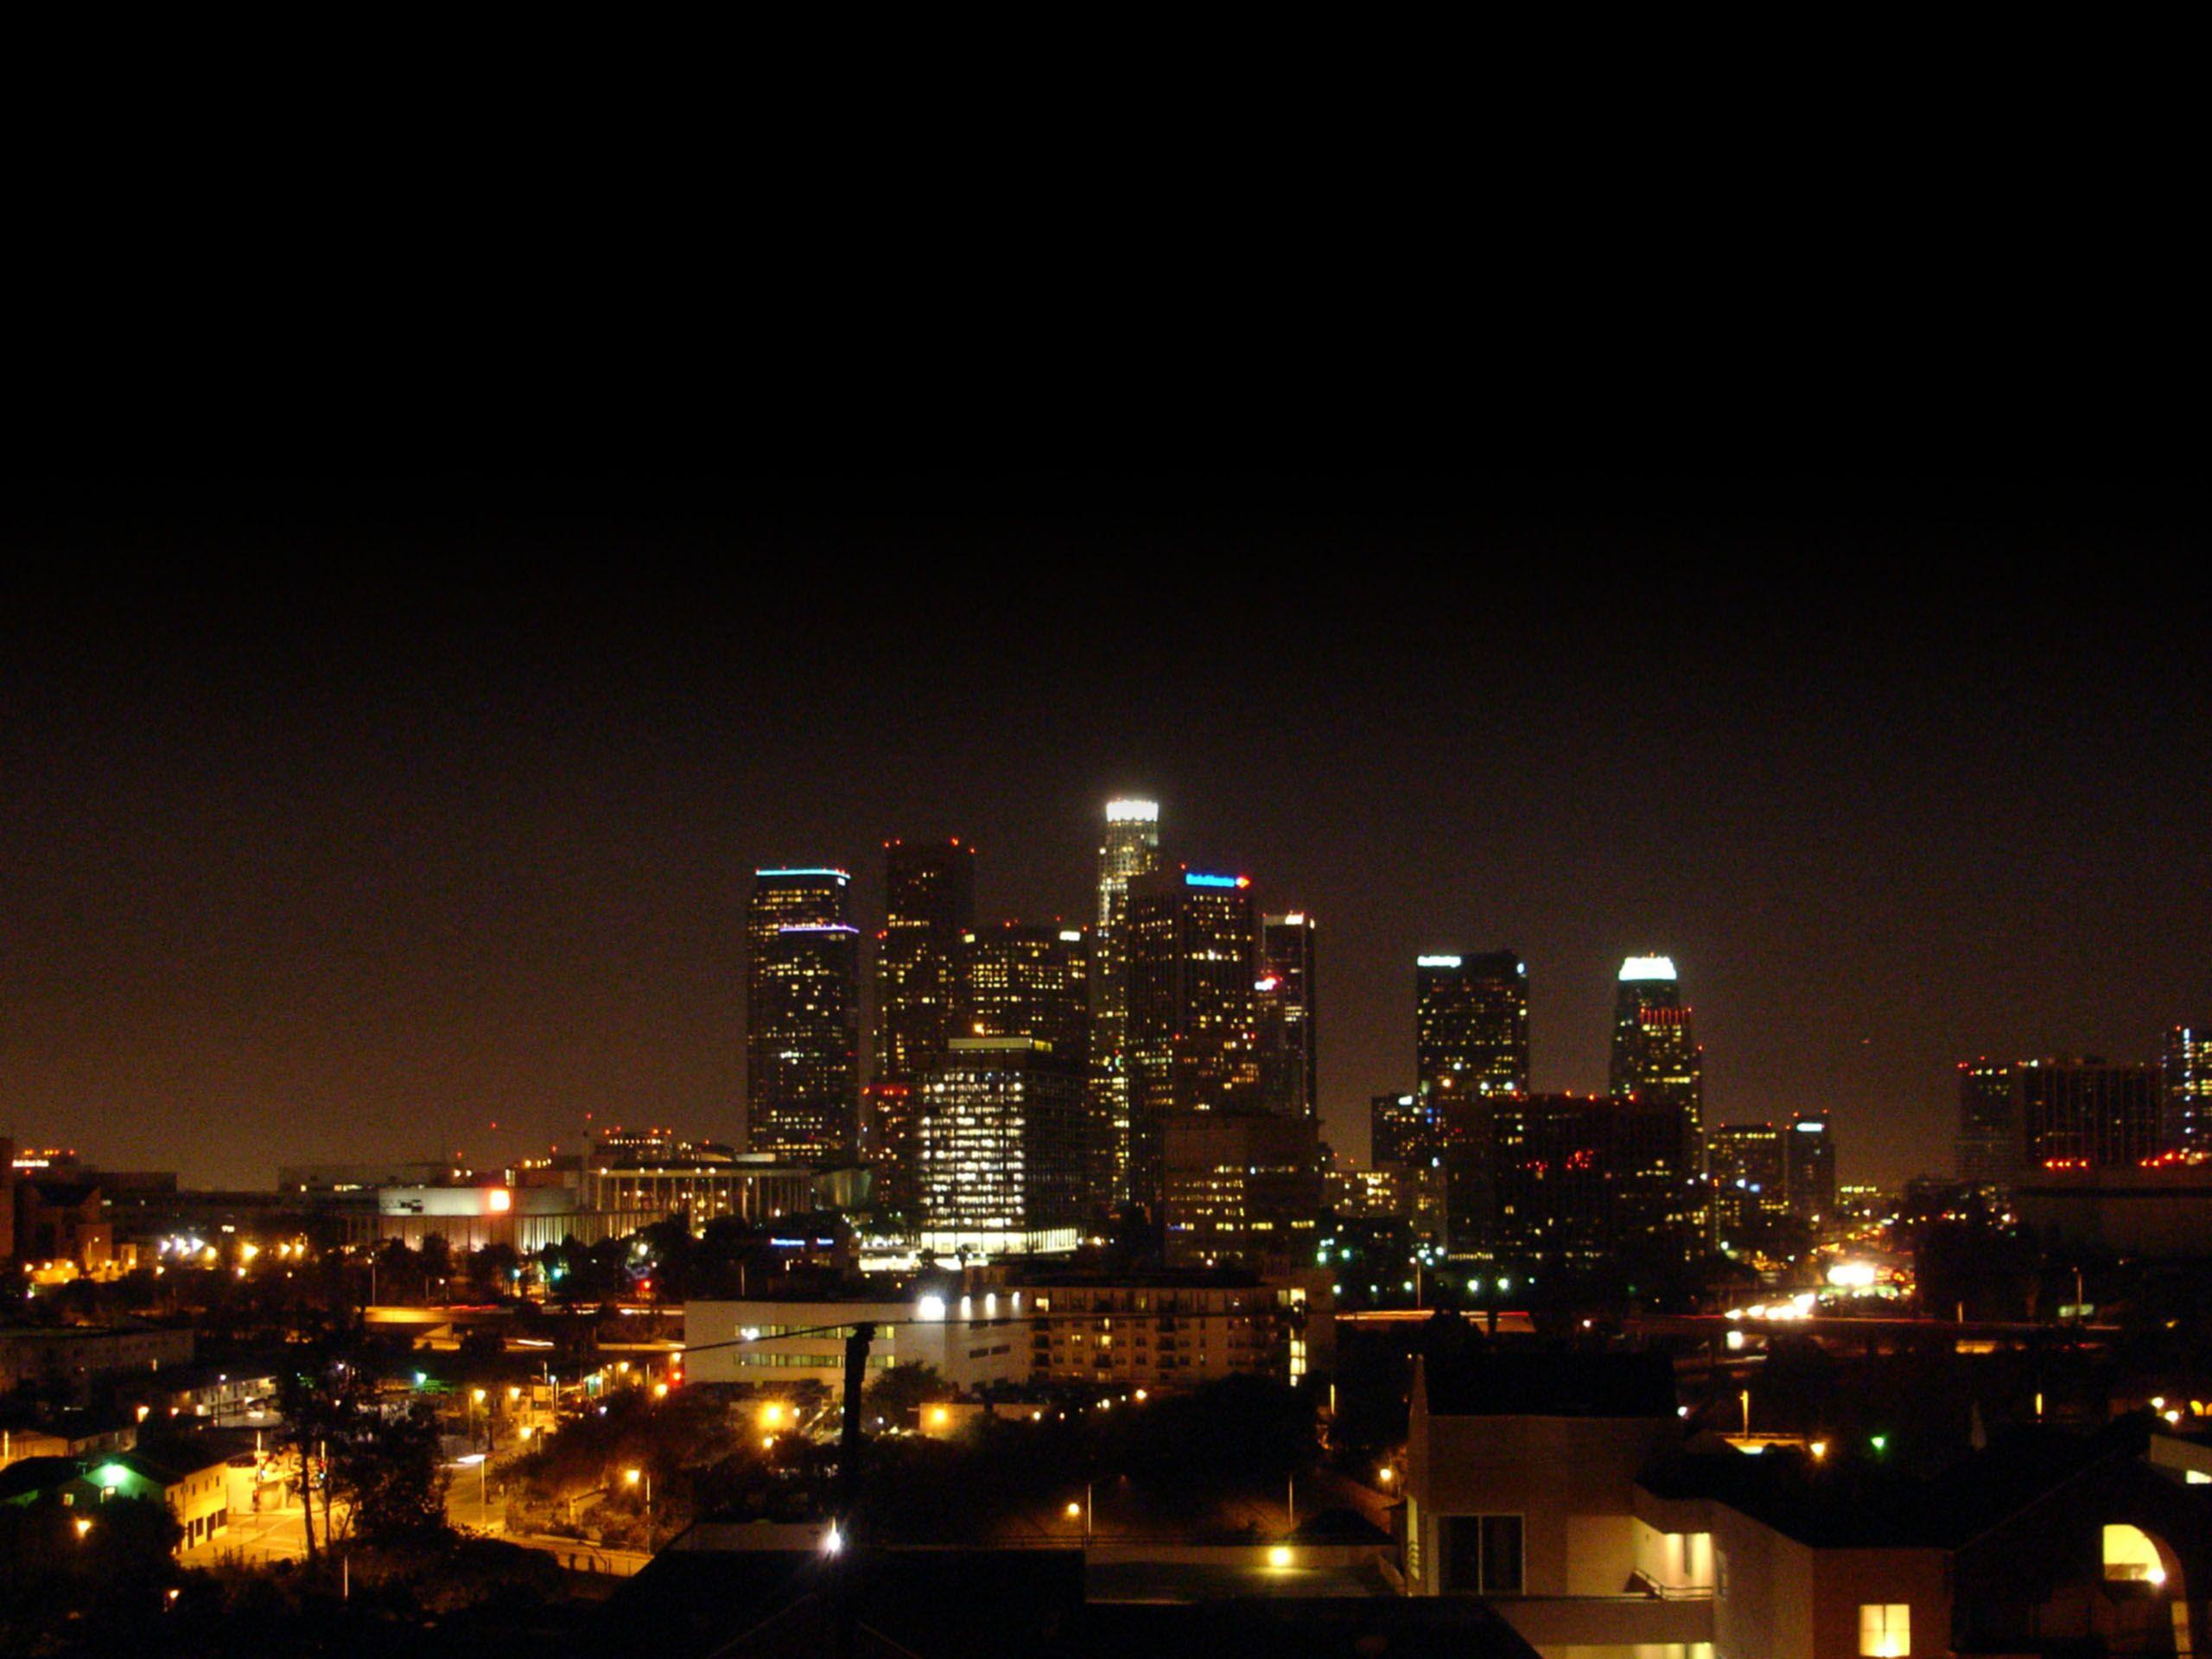 Los Angeles Wallpaper #6880092